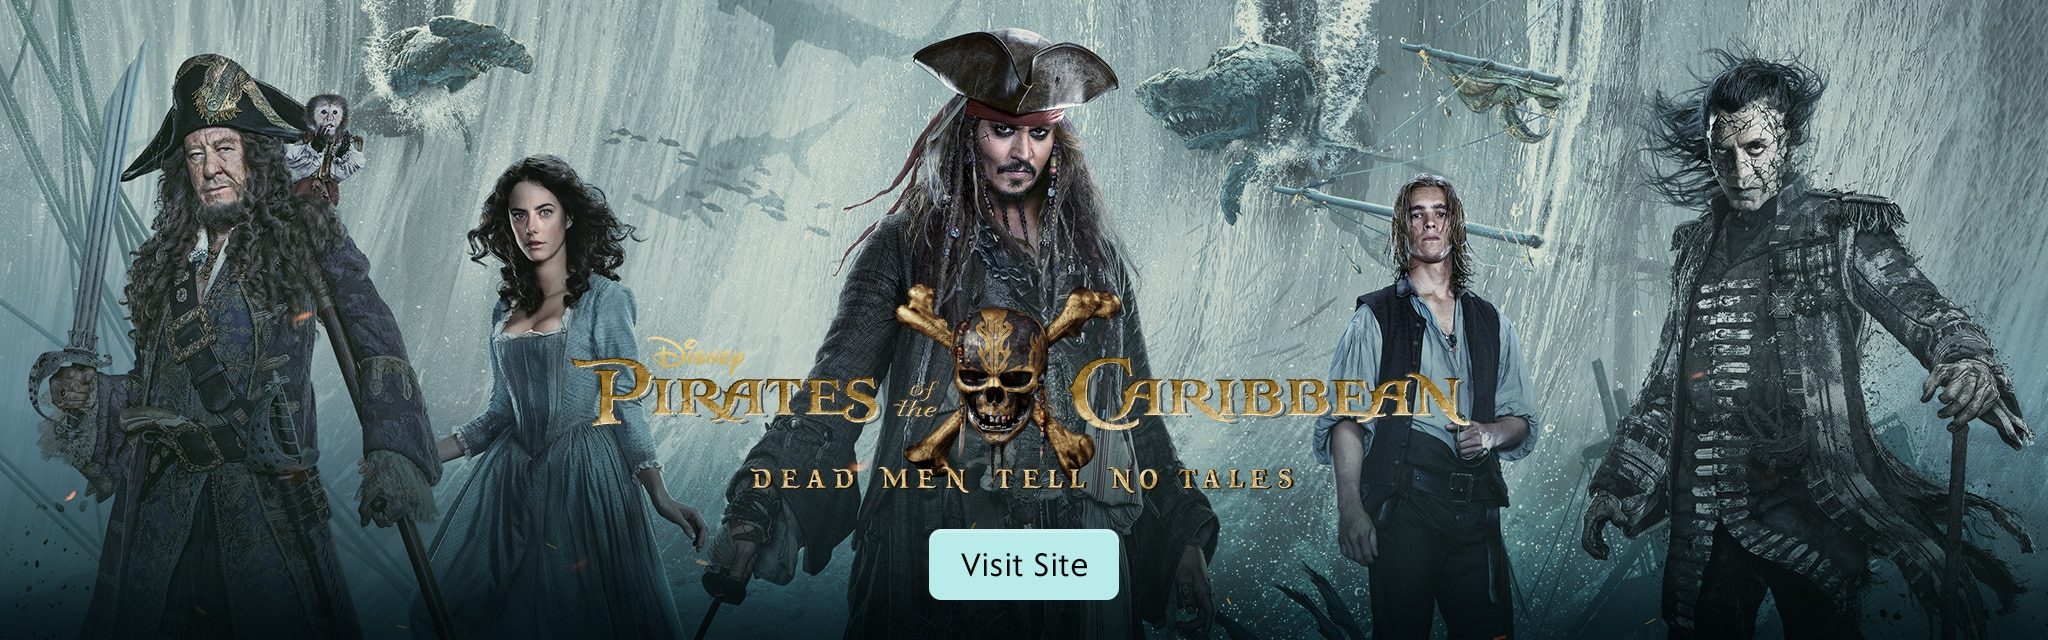 Visit the Pirates of the Caribbean: Dead Men Tell No Tales site